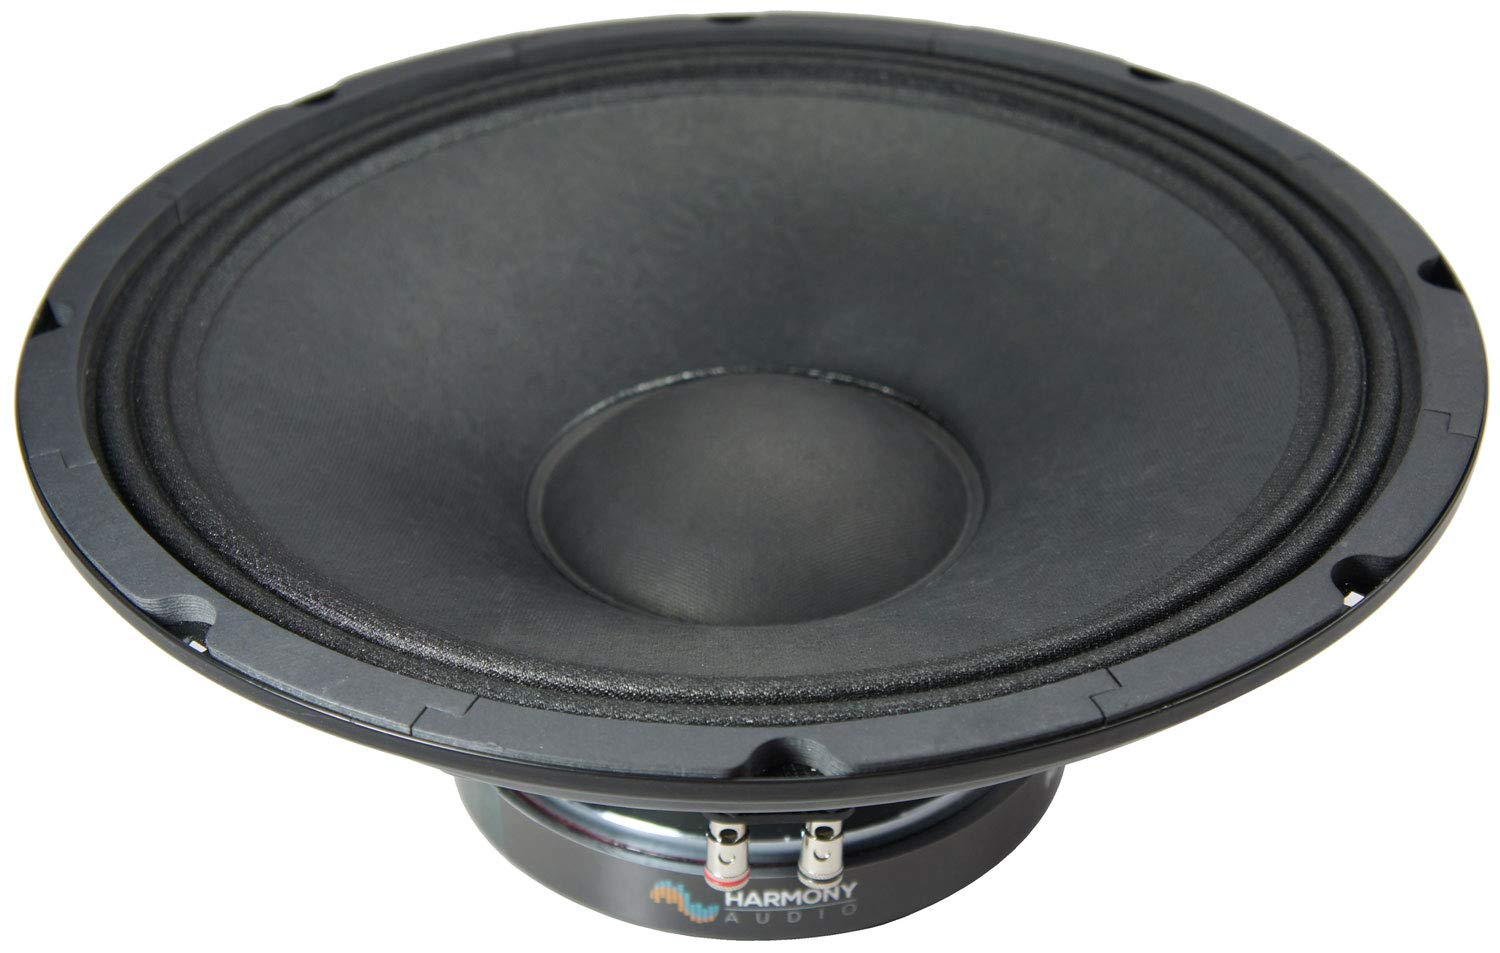 Harmony HA-P15LS8 Replacement 15'' Sub Pro PA 1000W Subwoofer/Speaker 8 Ohm Woofer - 90oz Magnet